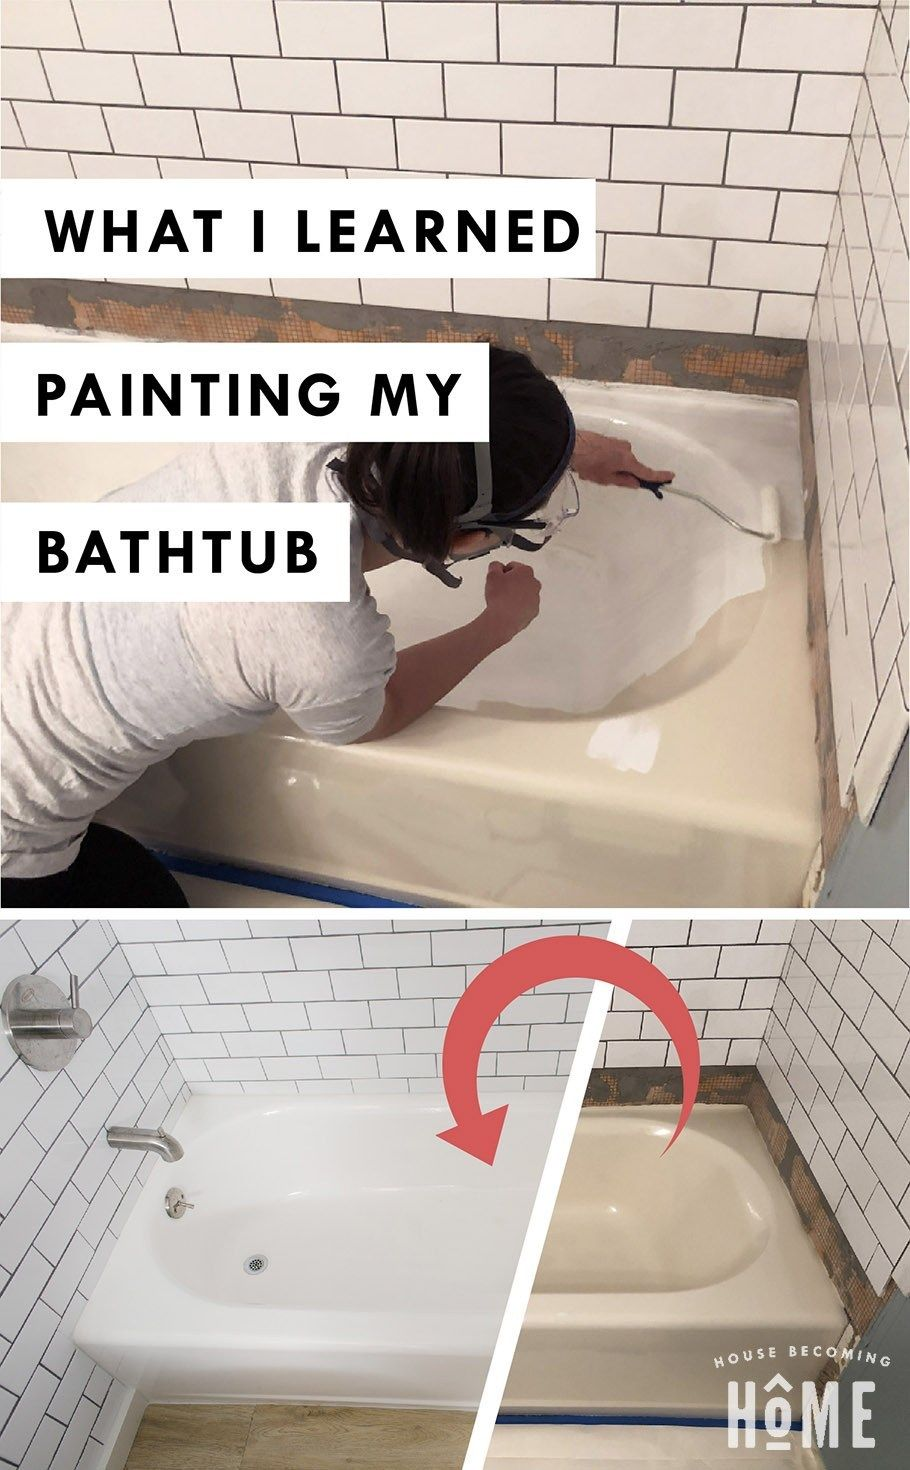 How To Paint A Bathtub With Images Painting Bathtub Diy